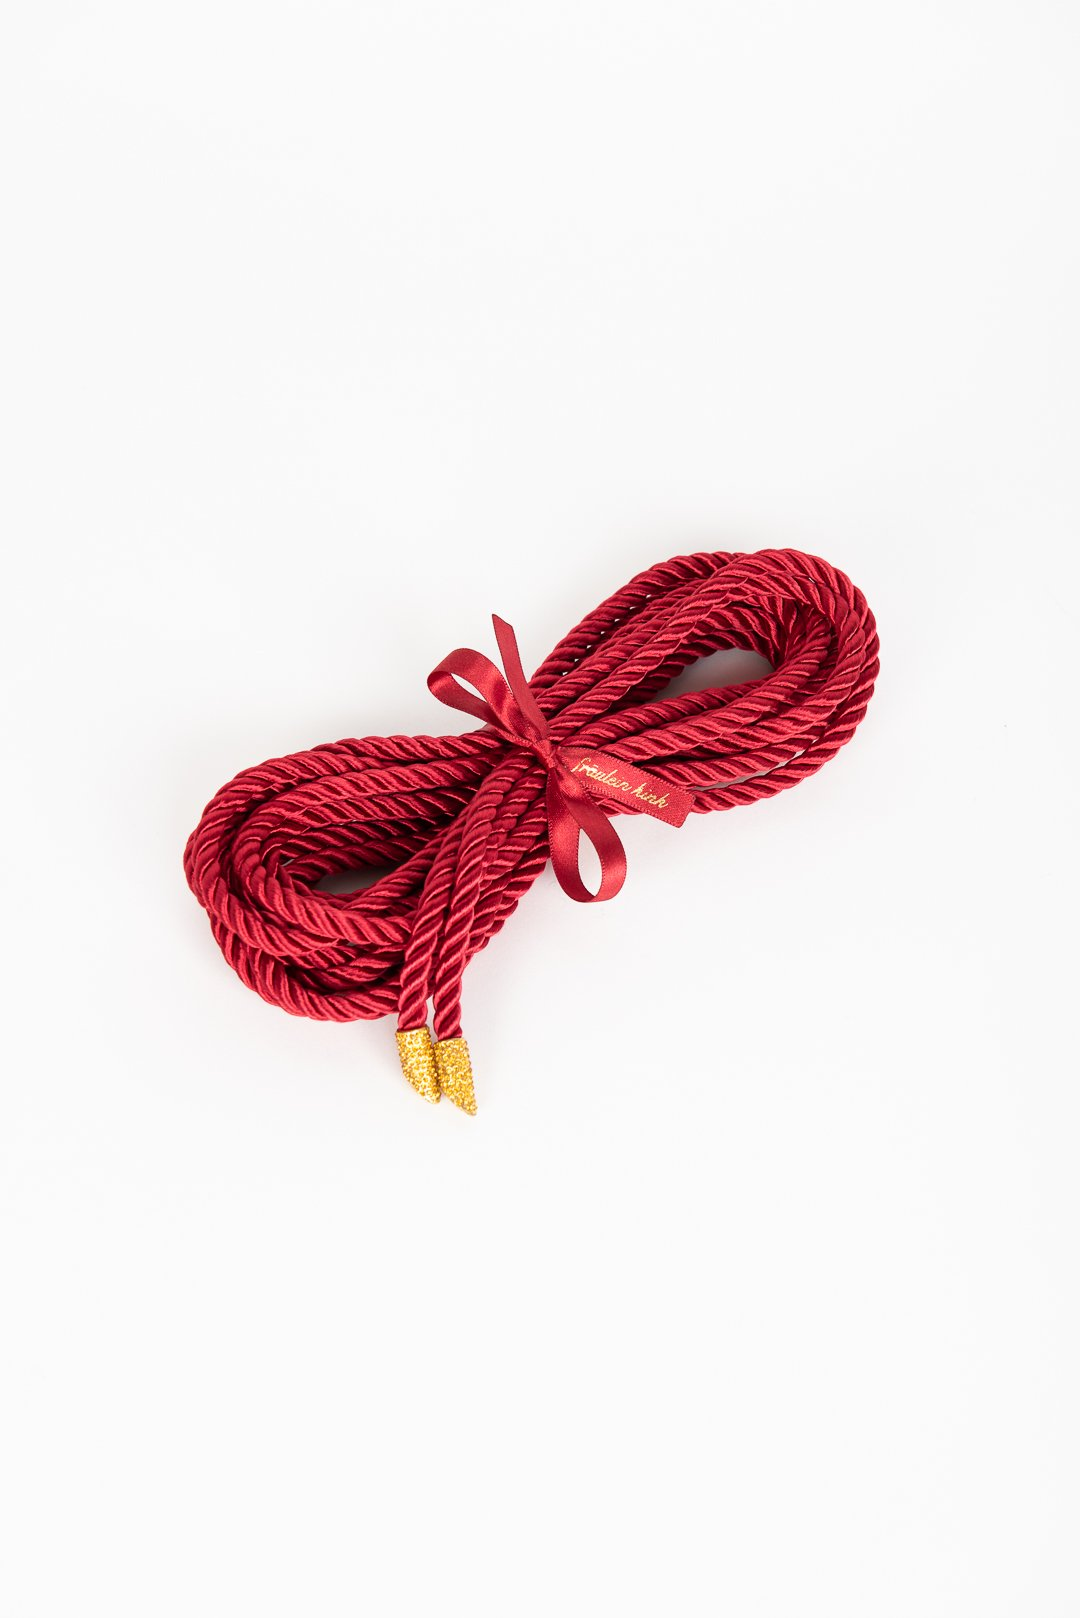 Luxury Lasso Bondage Rope With Crystal Tip buy online at Fraulein Kink